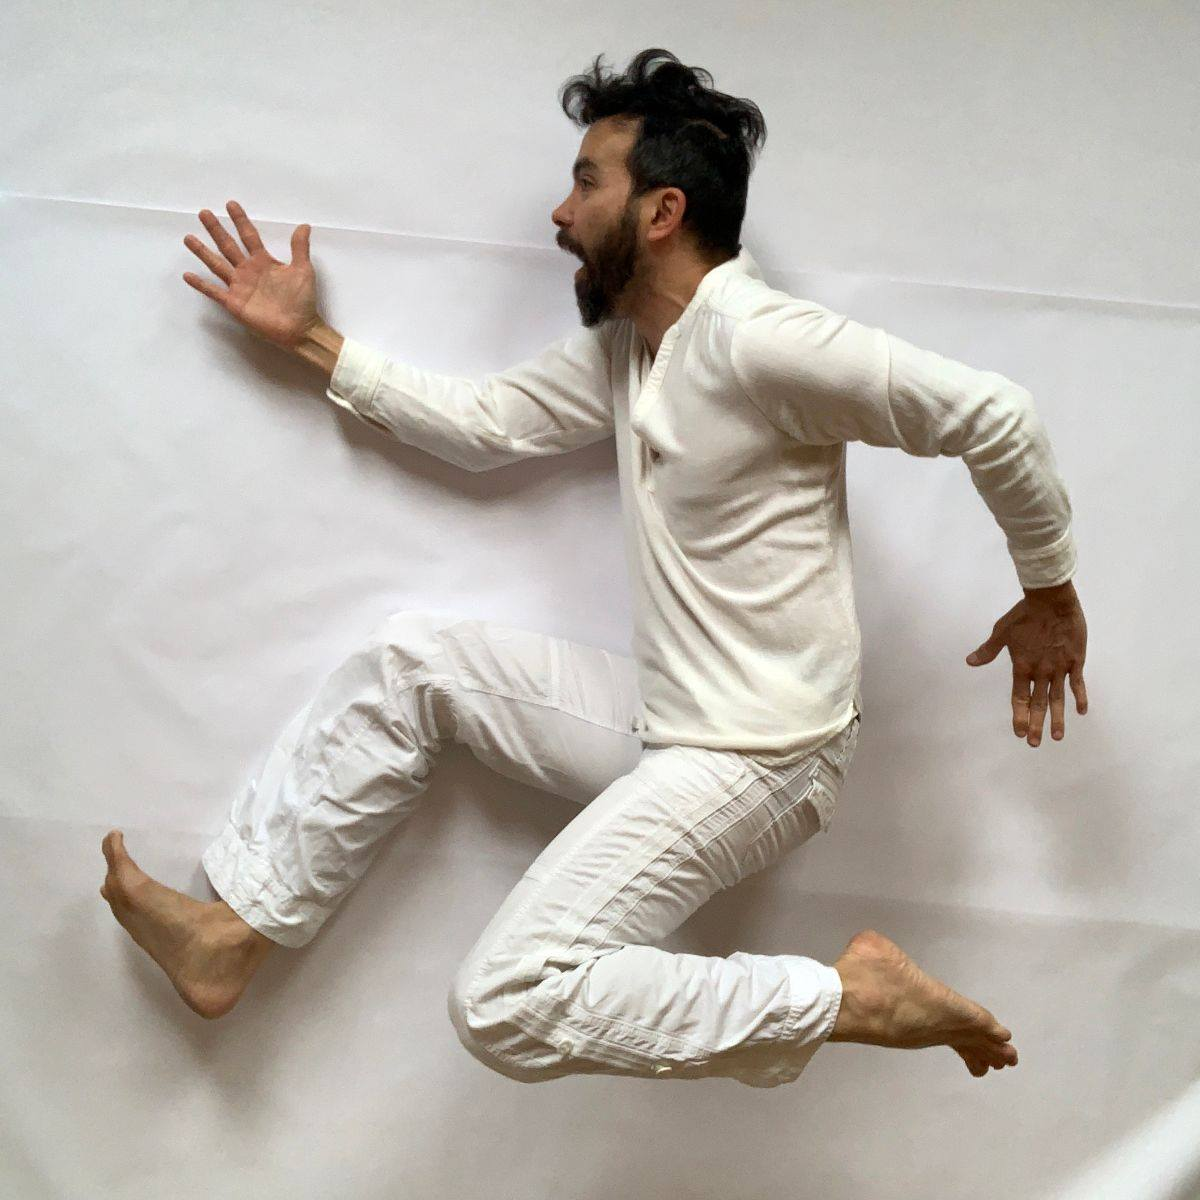 tom lee dressed in all white against a white background jumps in the air in a theatrical formation